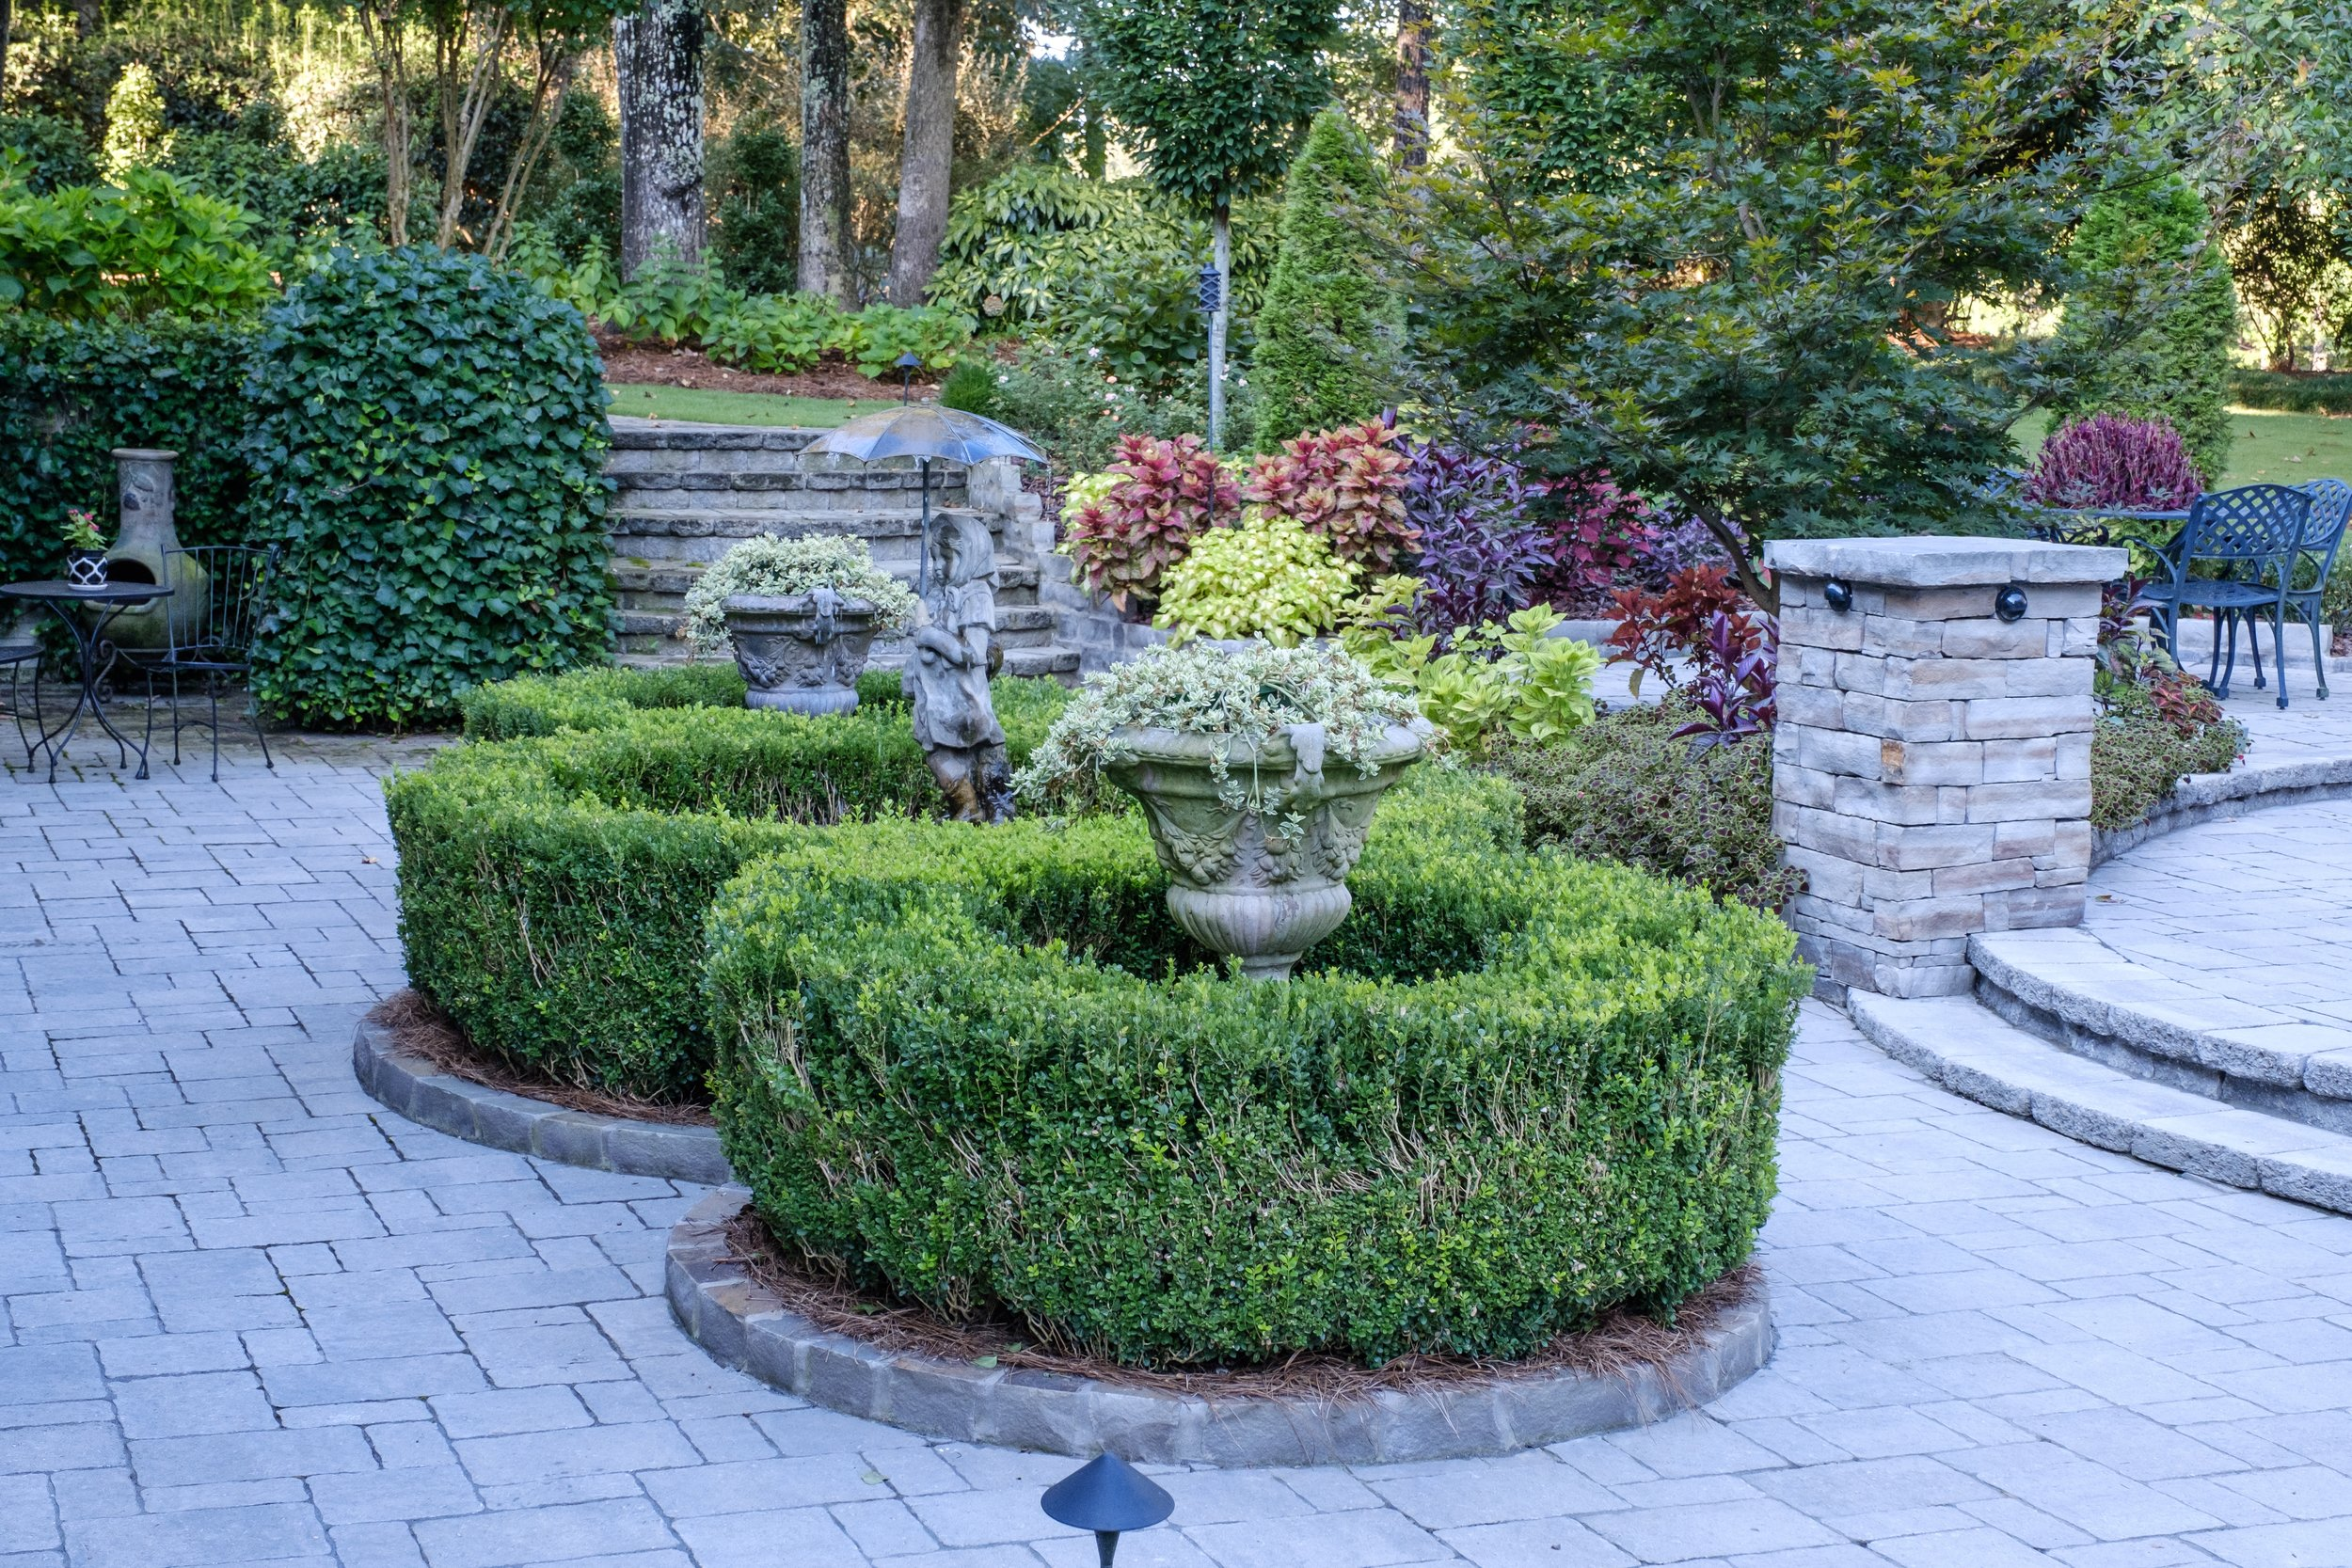 Landscaping - lawn maintenance and landscape installations